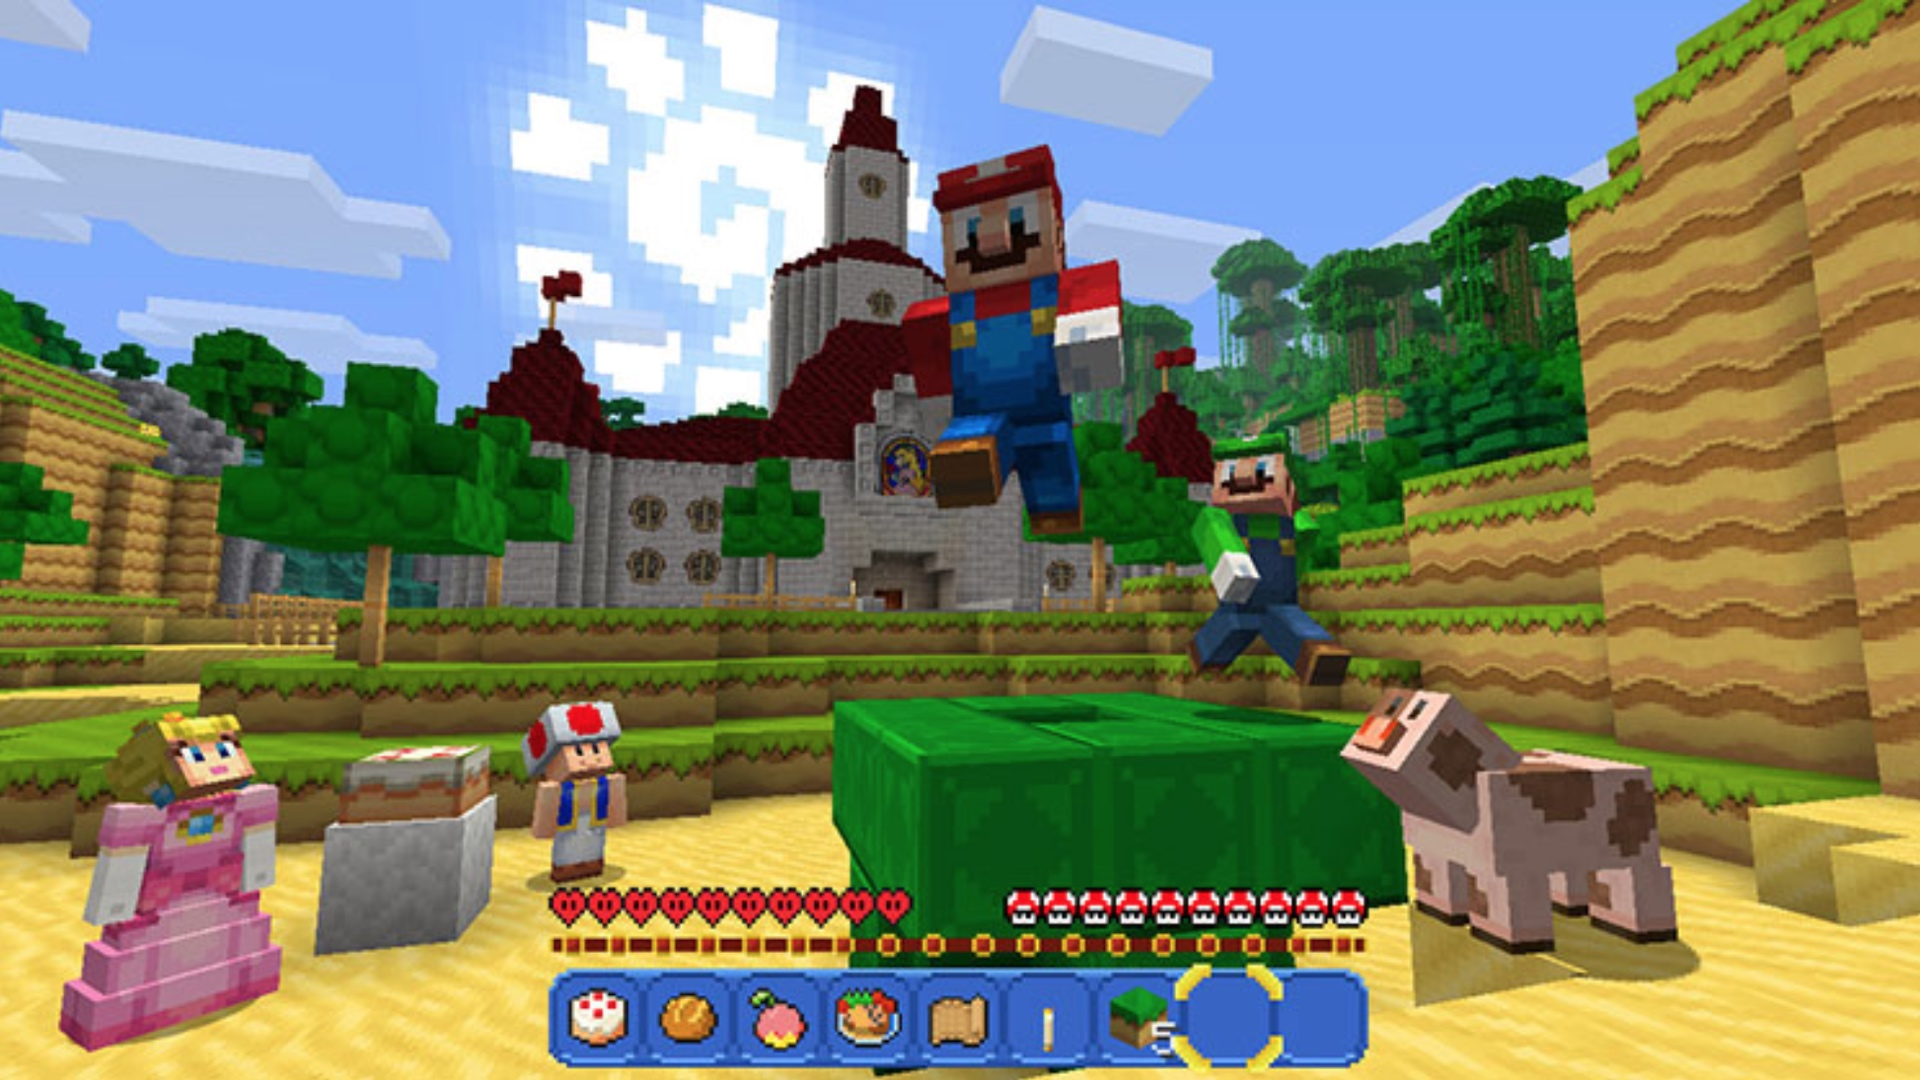 This is why Sony isn't likely to ever allow Minecraft cross-platform play